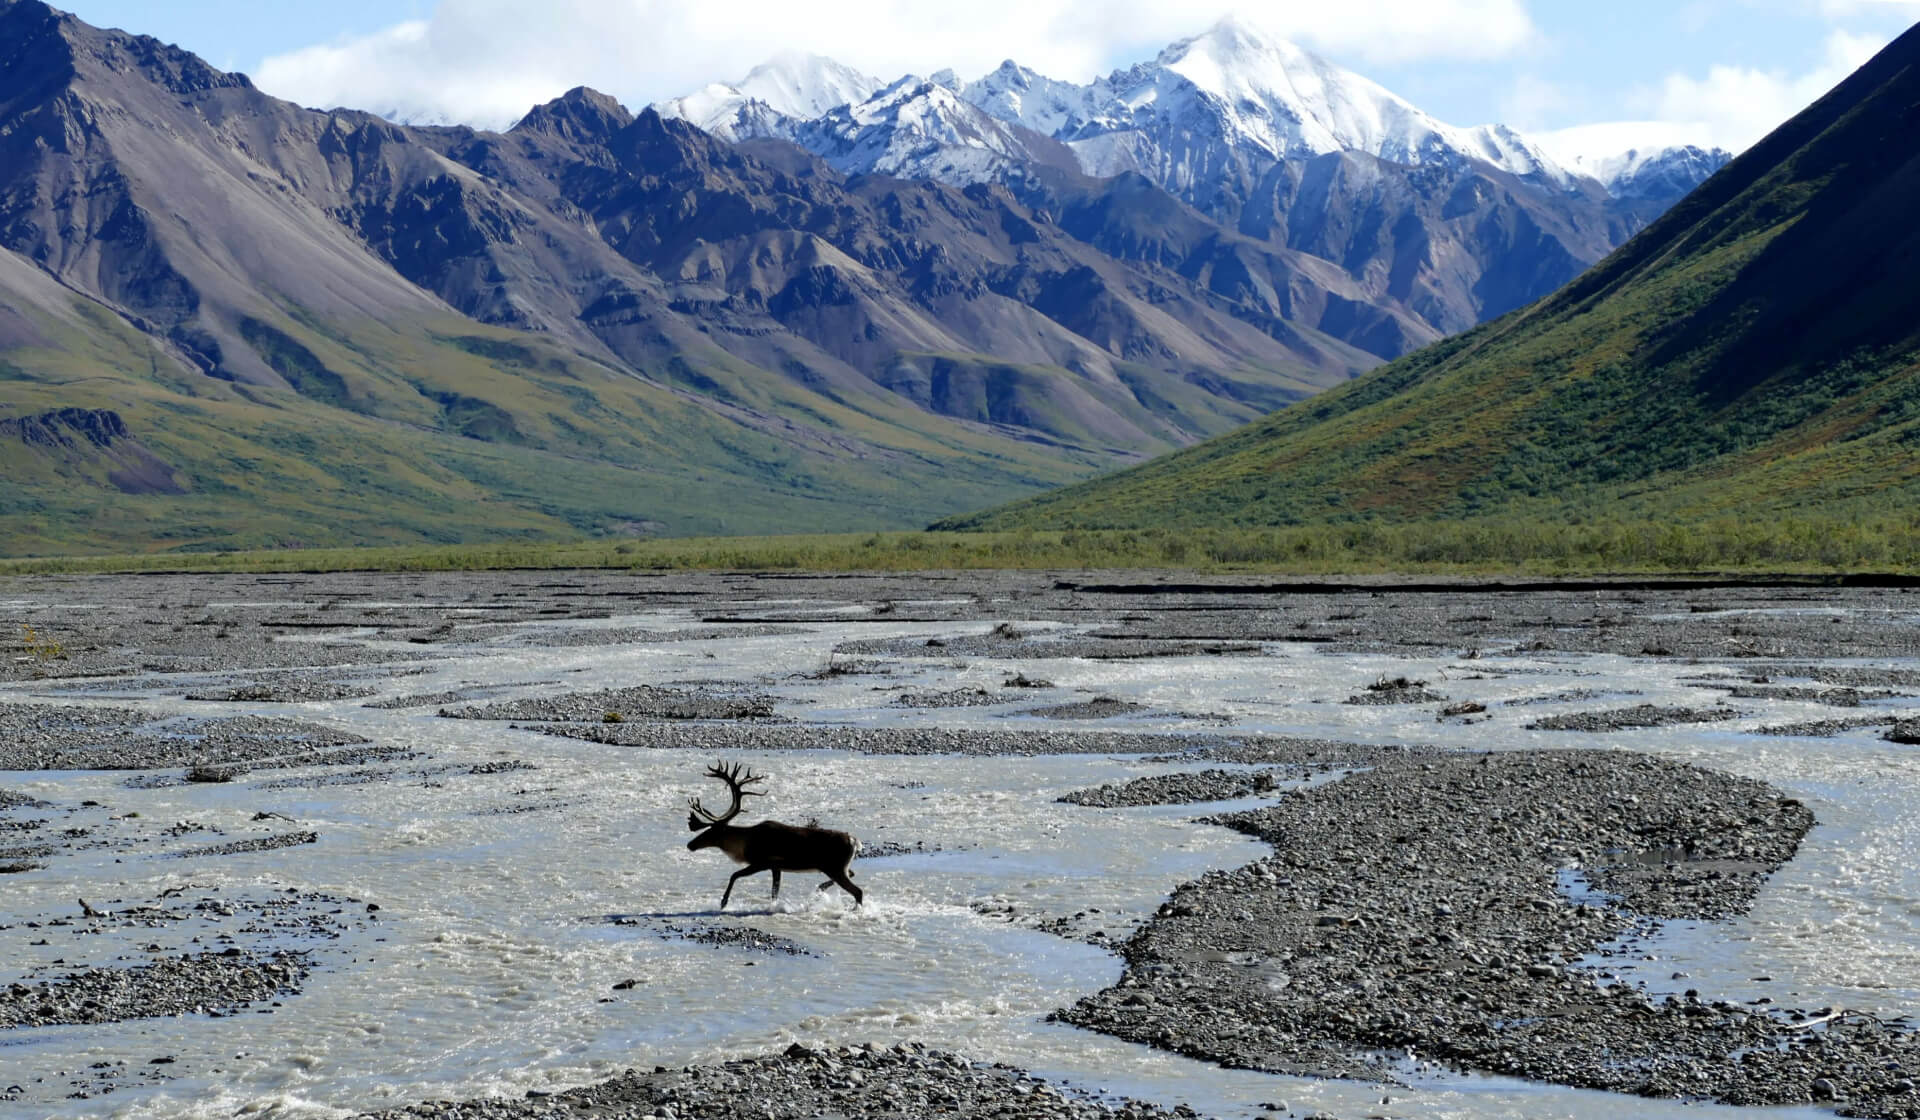 Moose crossing a river in a green valley surrounded by glacier-topped mountains in Alaska